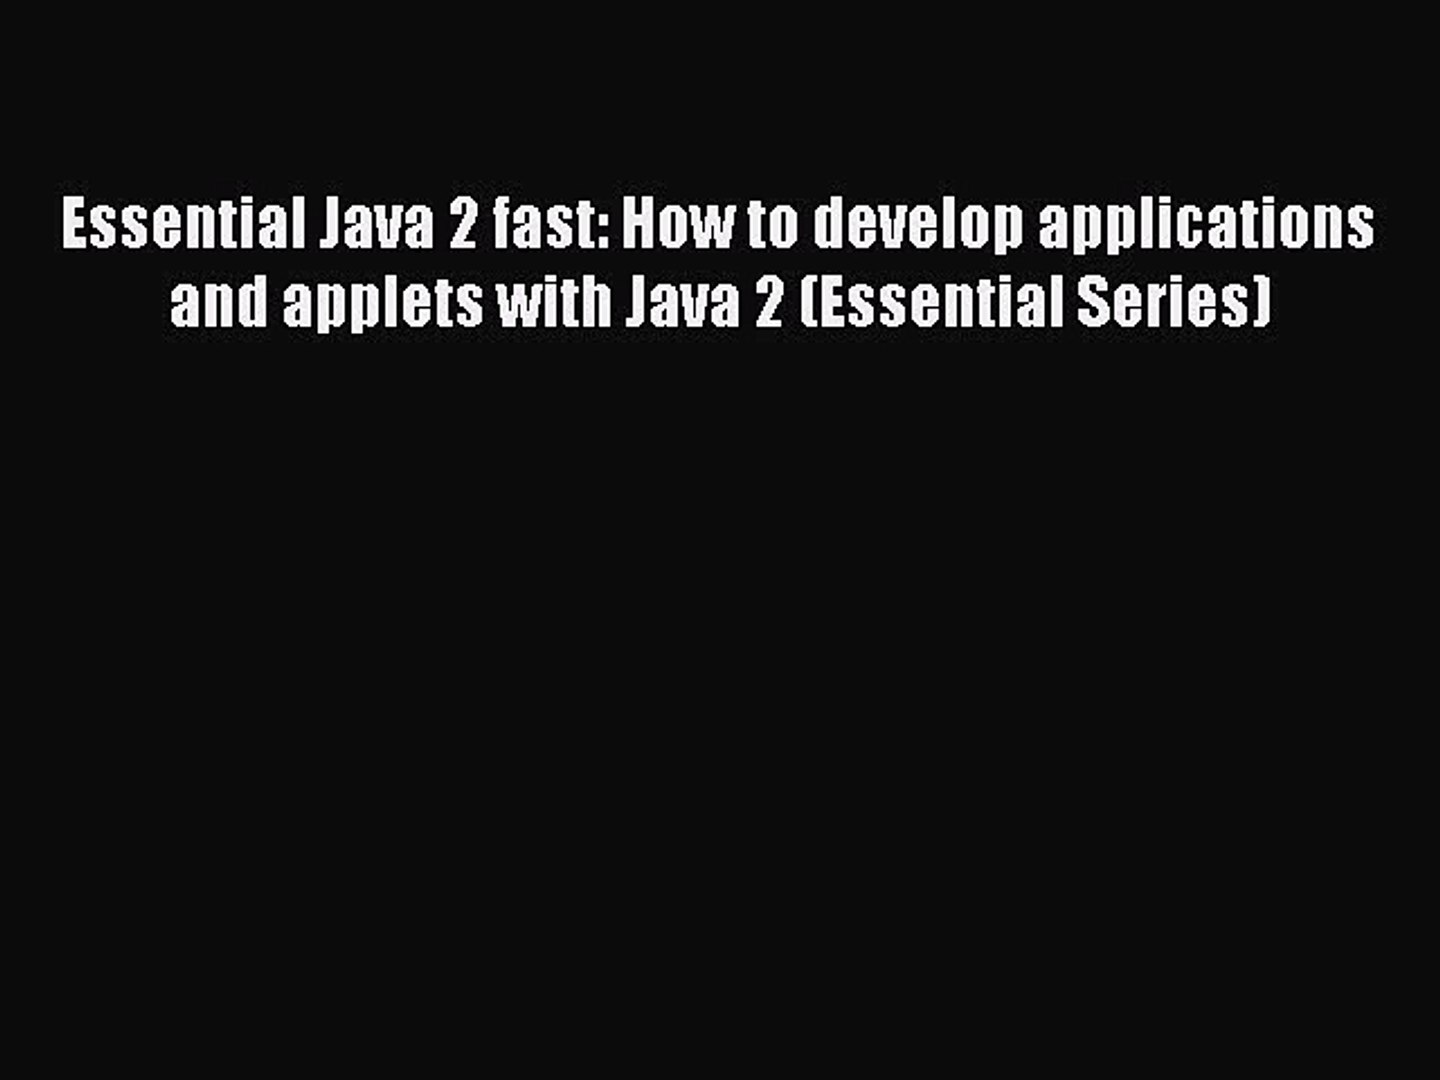 Essential Java 2 fast: How to develop applications and applets with Java 2 (Essential Series)